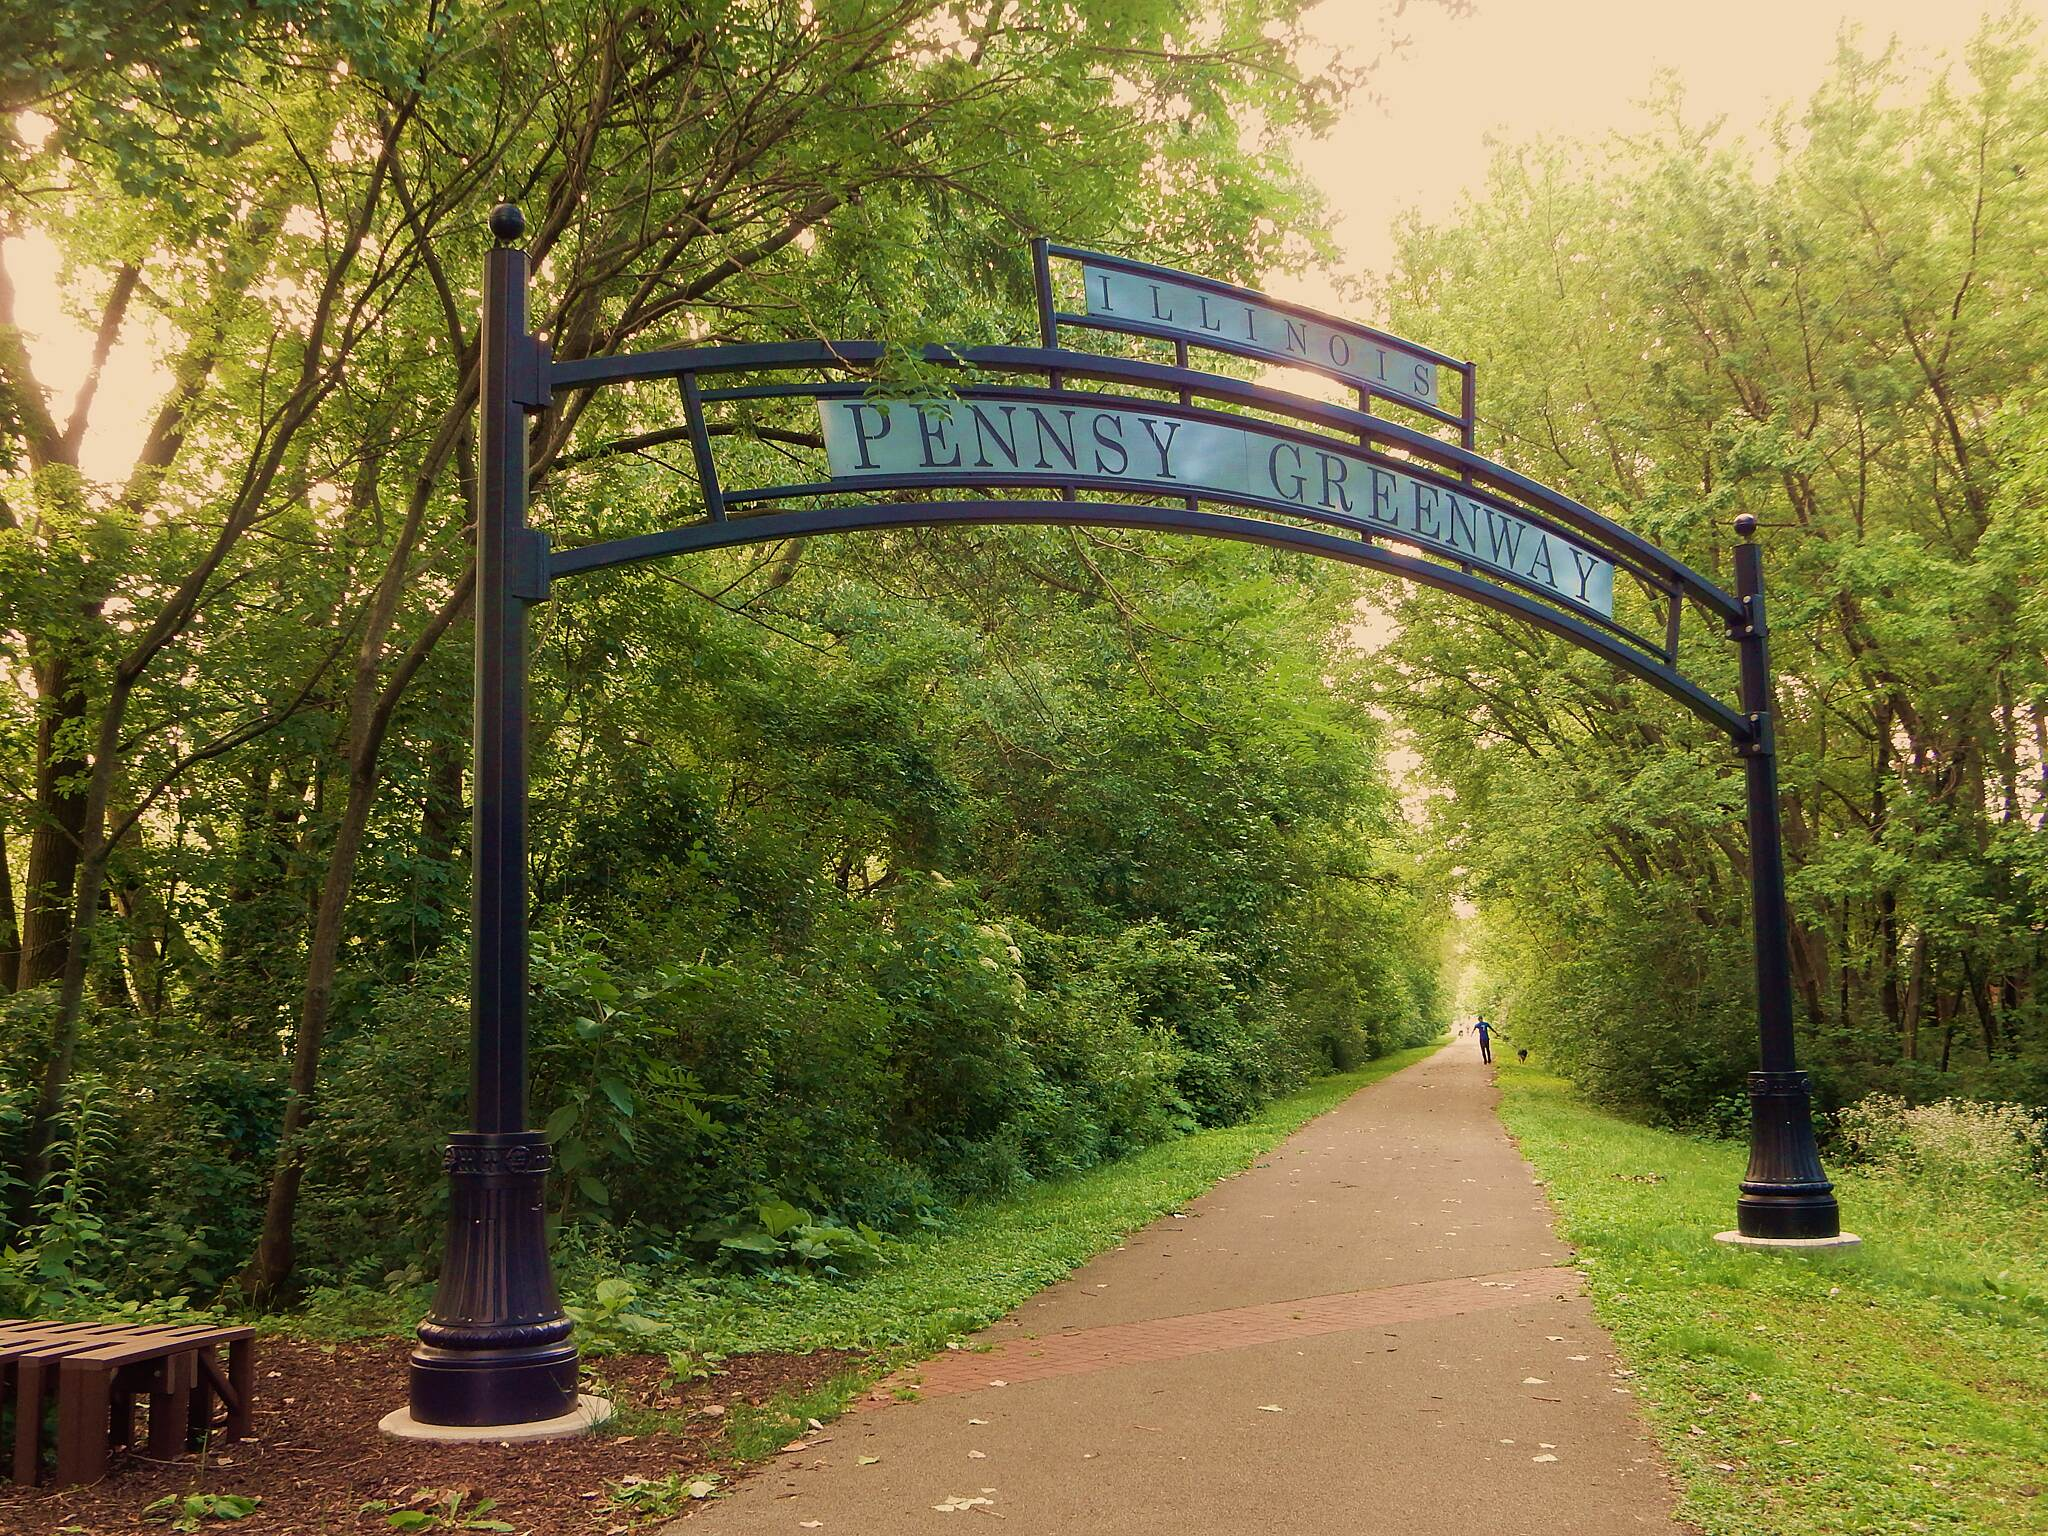 Pennsy Greenway Welcome to Lansing, Illinois. Taken north of Fisher Ave., 7-5-17.